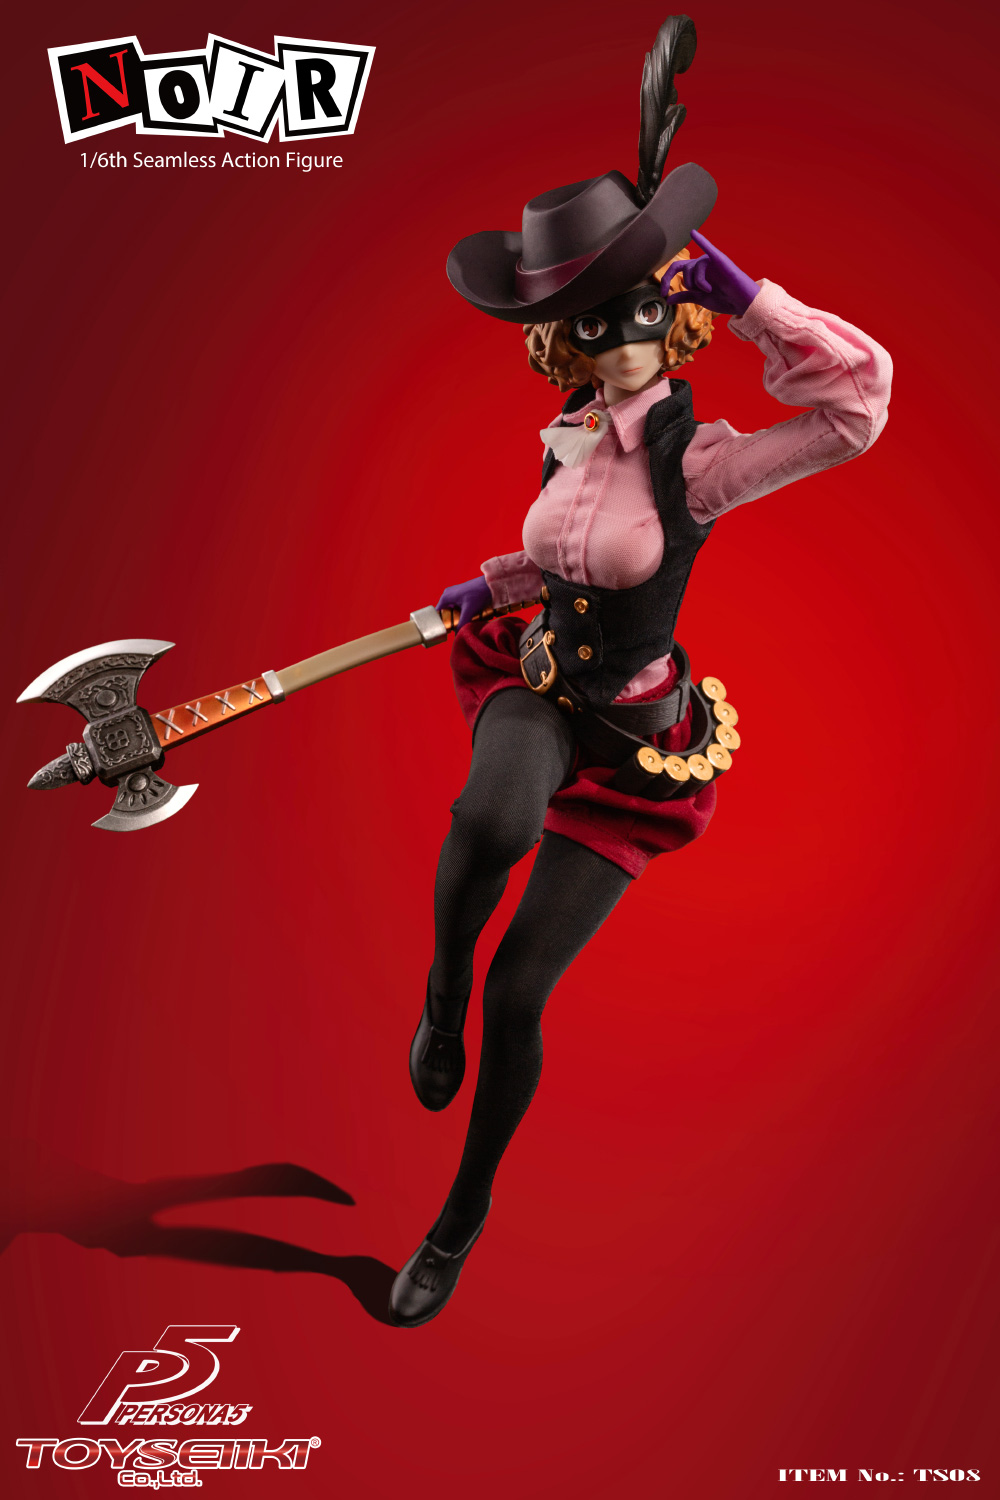 female - NEW PRODUCT: TOYSEIIKI: 1/6 Persona 5/PERSONA 5 - NOIR Movable TS08# 01105312